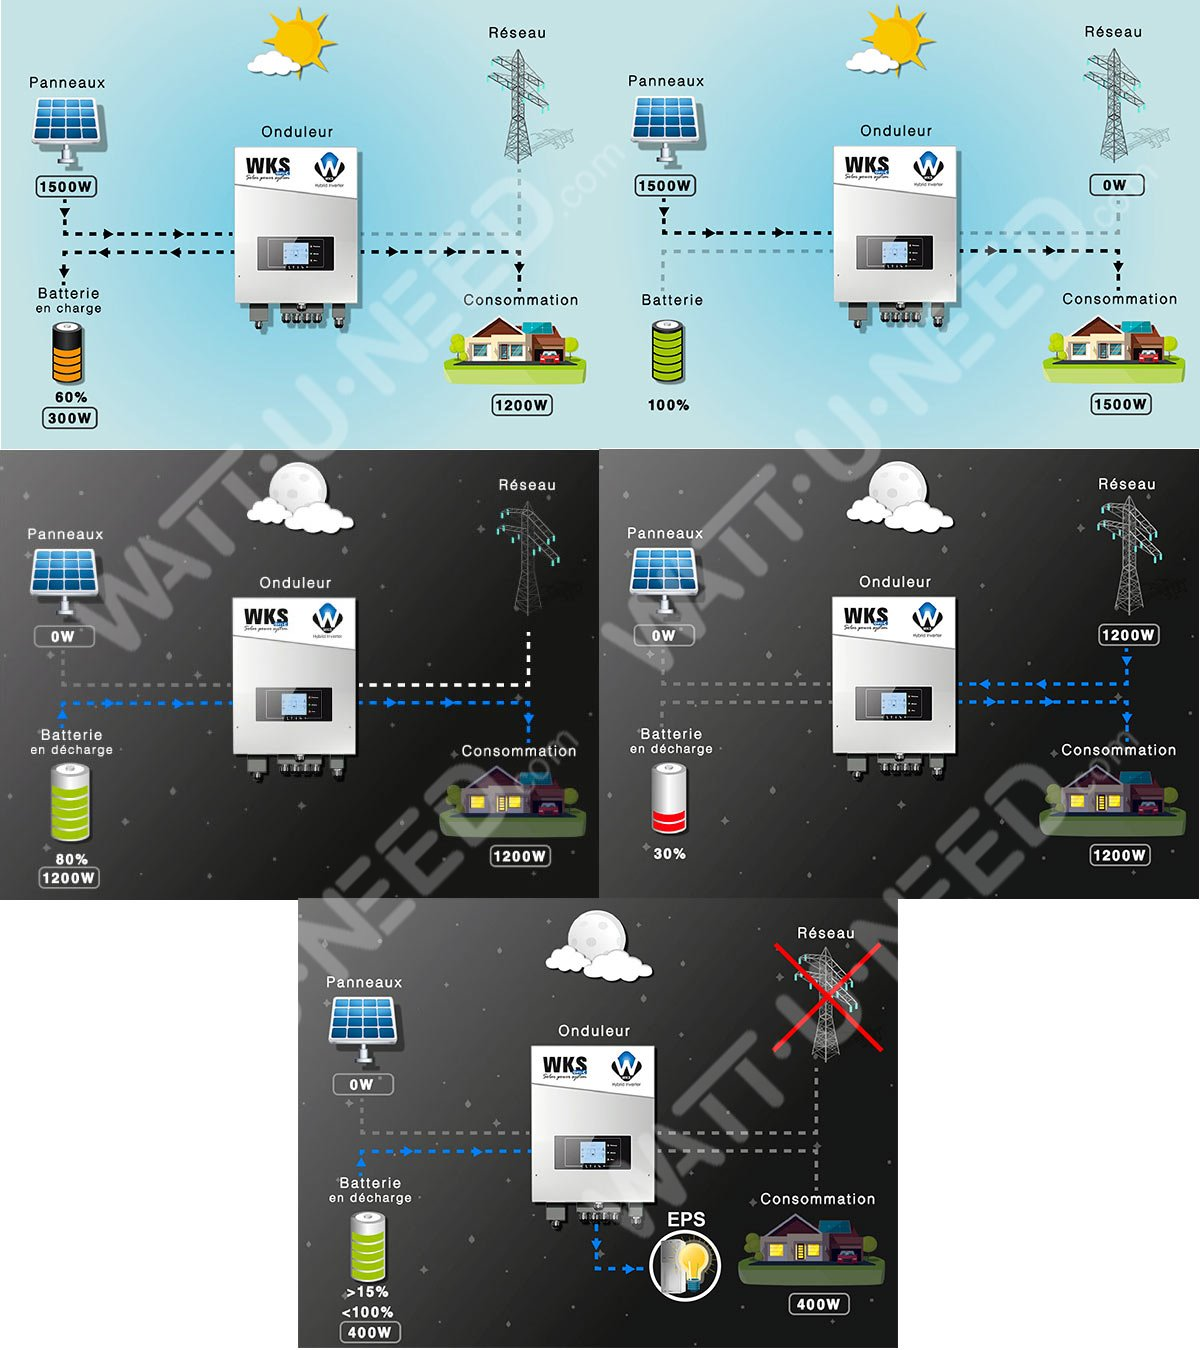 Day and night operation of the Opti-C inverter with and without grid